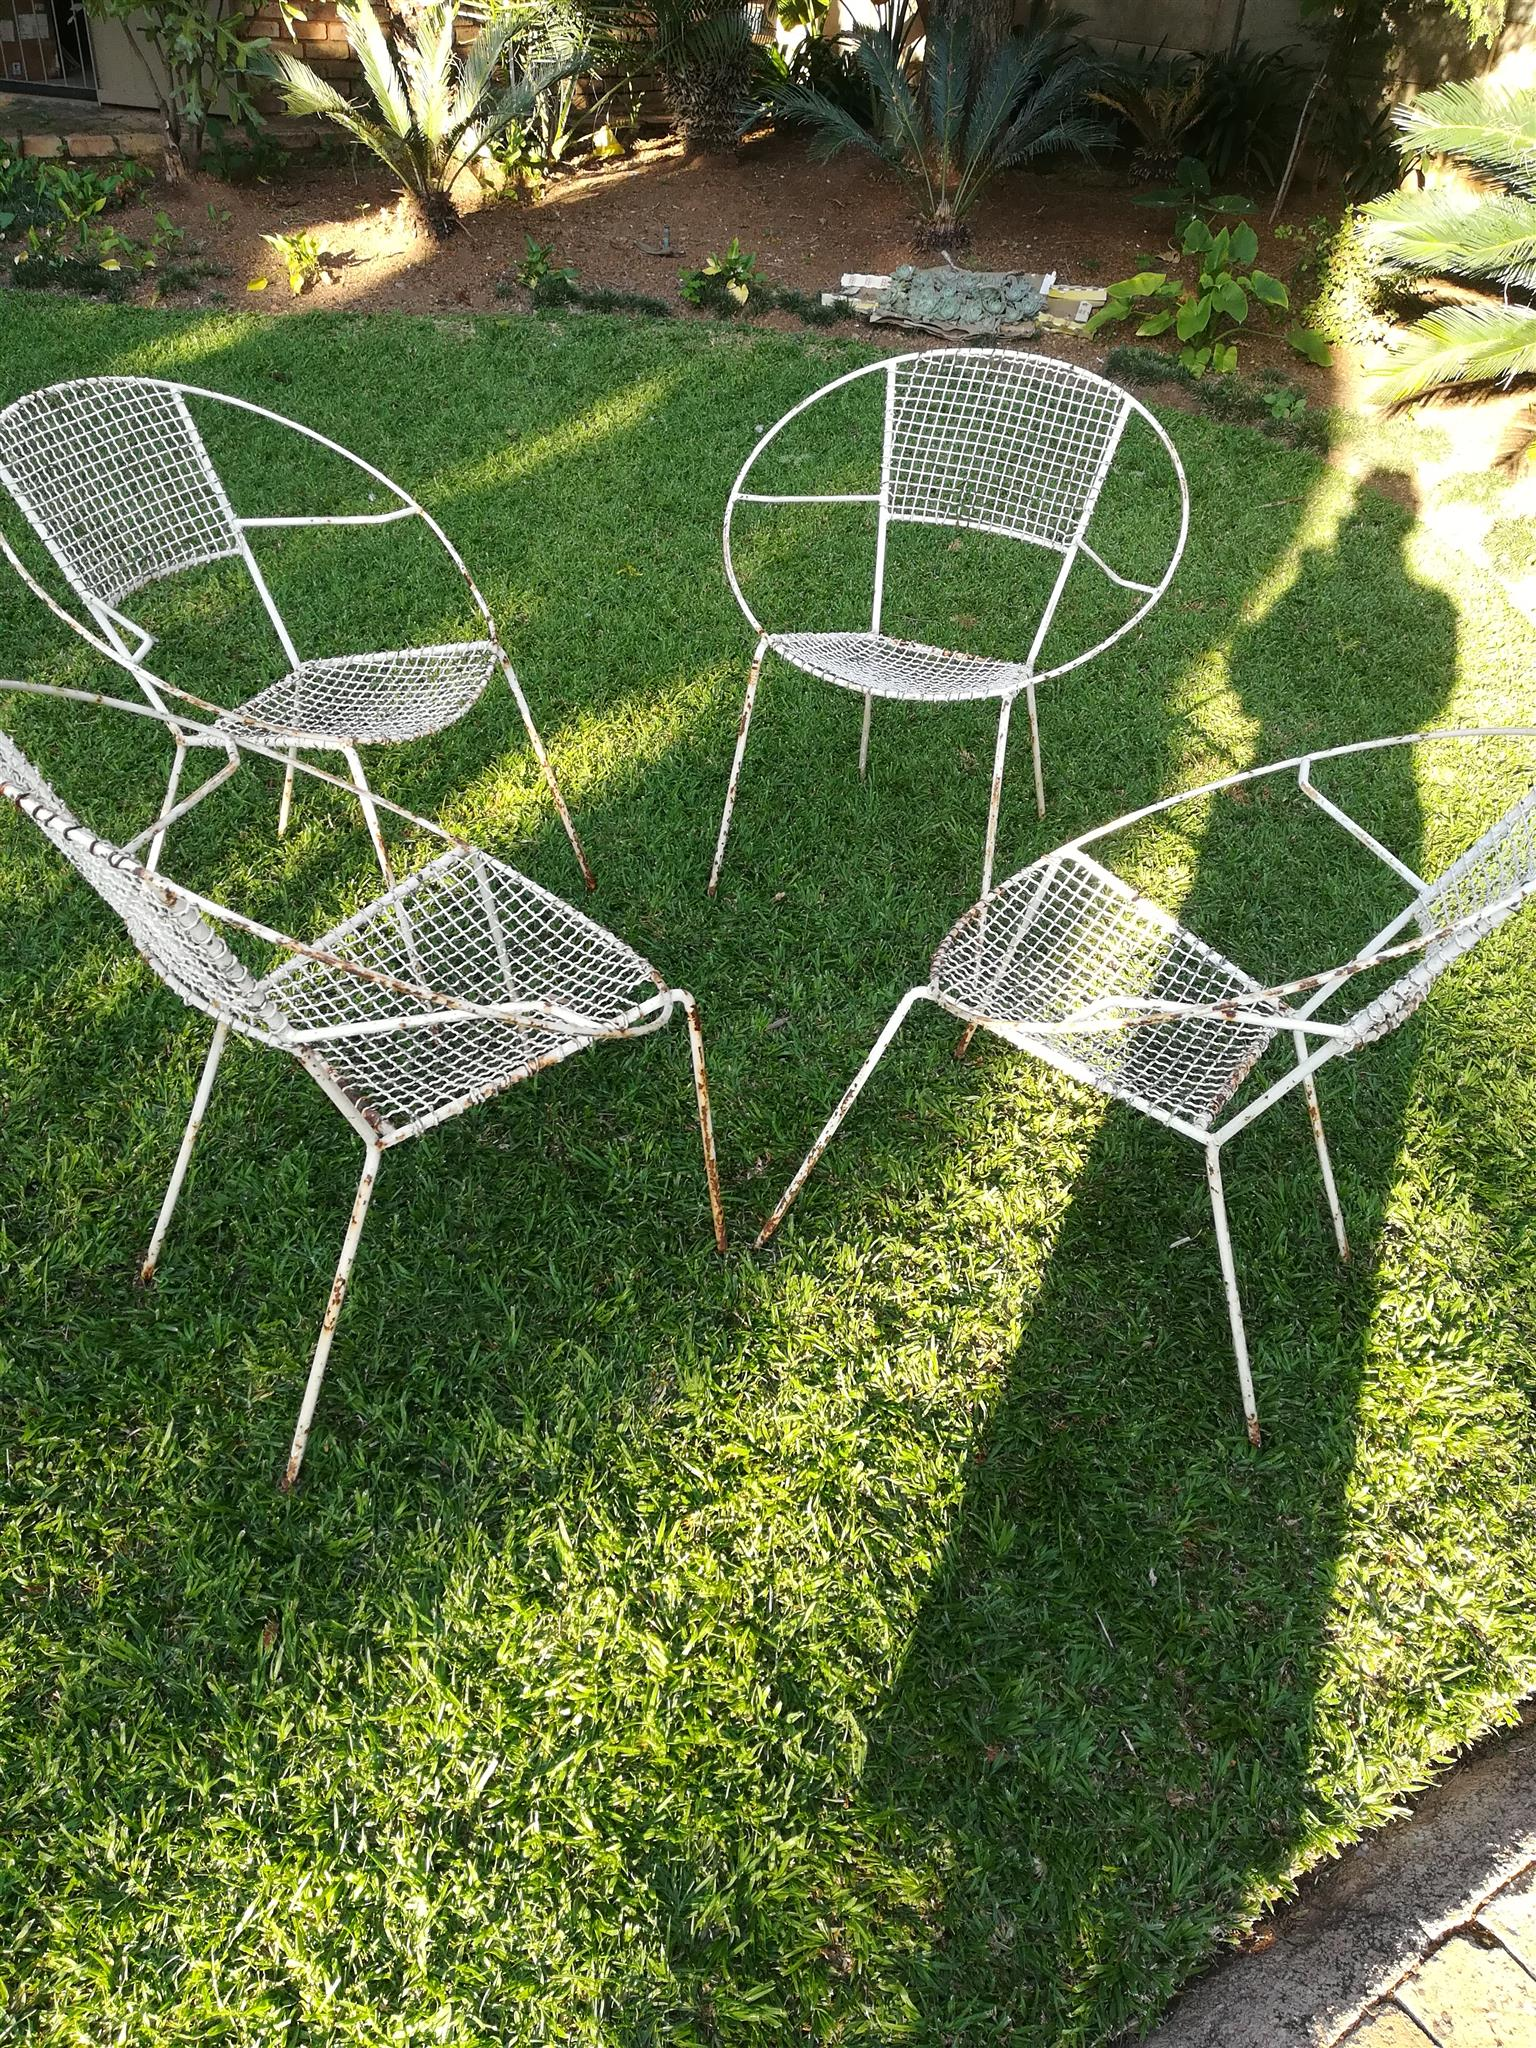 Wire garden chairs - needs paint